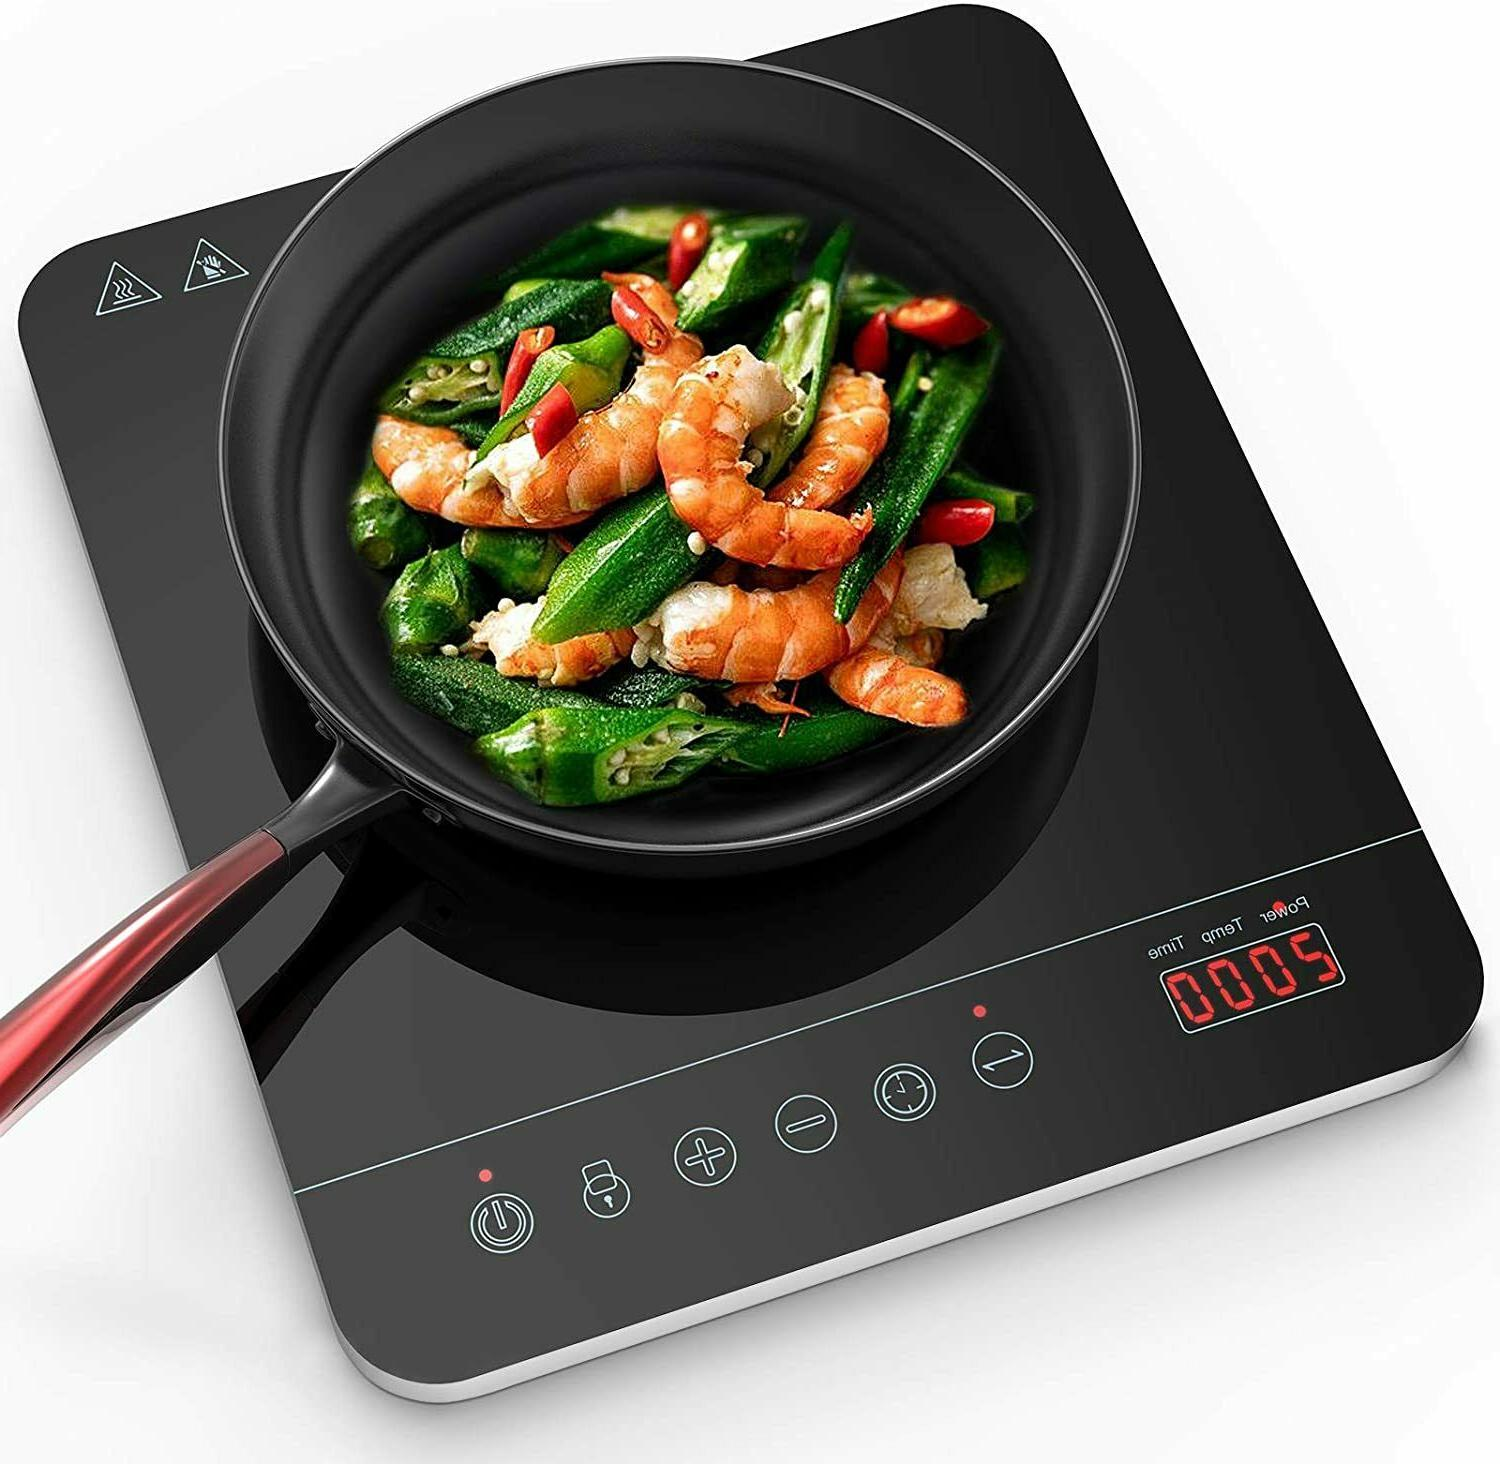 portable induction cooktop 15 temperature power setting